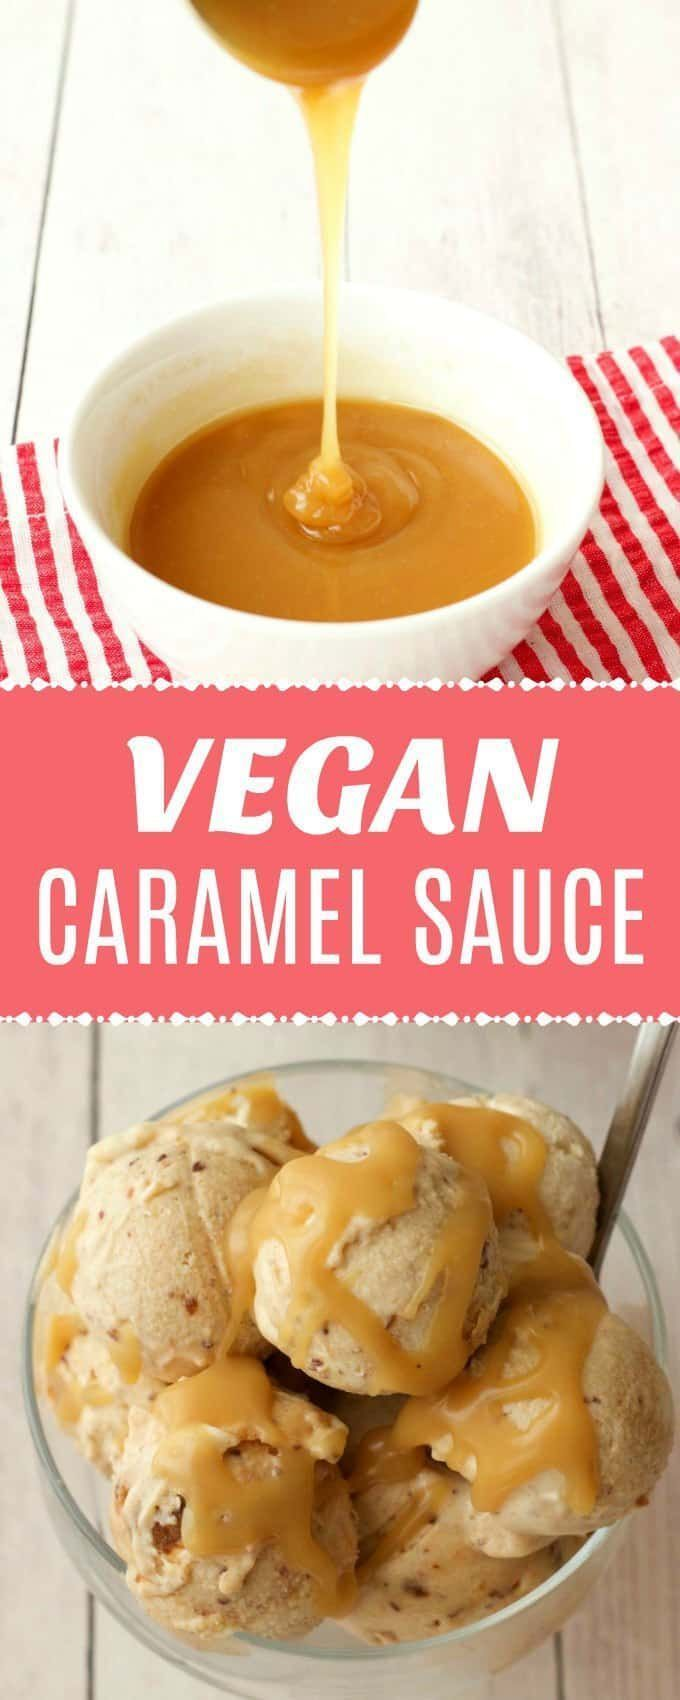 vegan caramel sauce. This sauce is perfect to pour over your vegan ice-cream or to serve with any dessert. Ready in 5 minutes! |